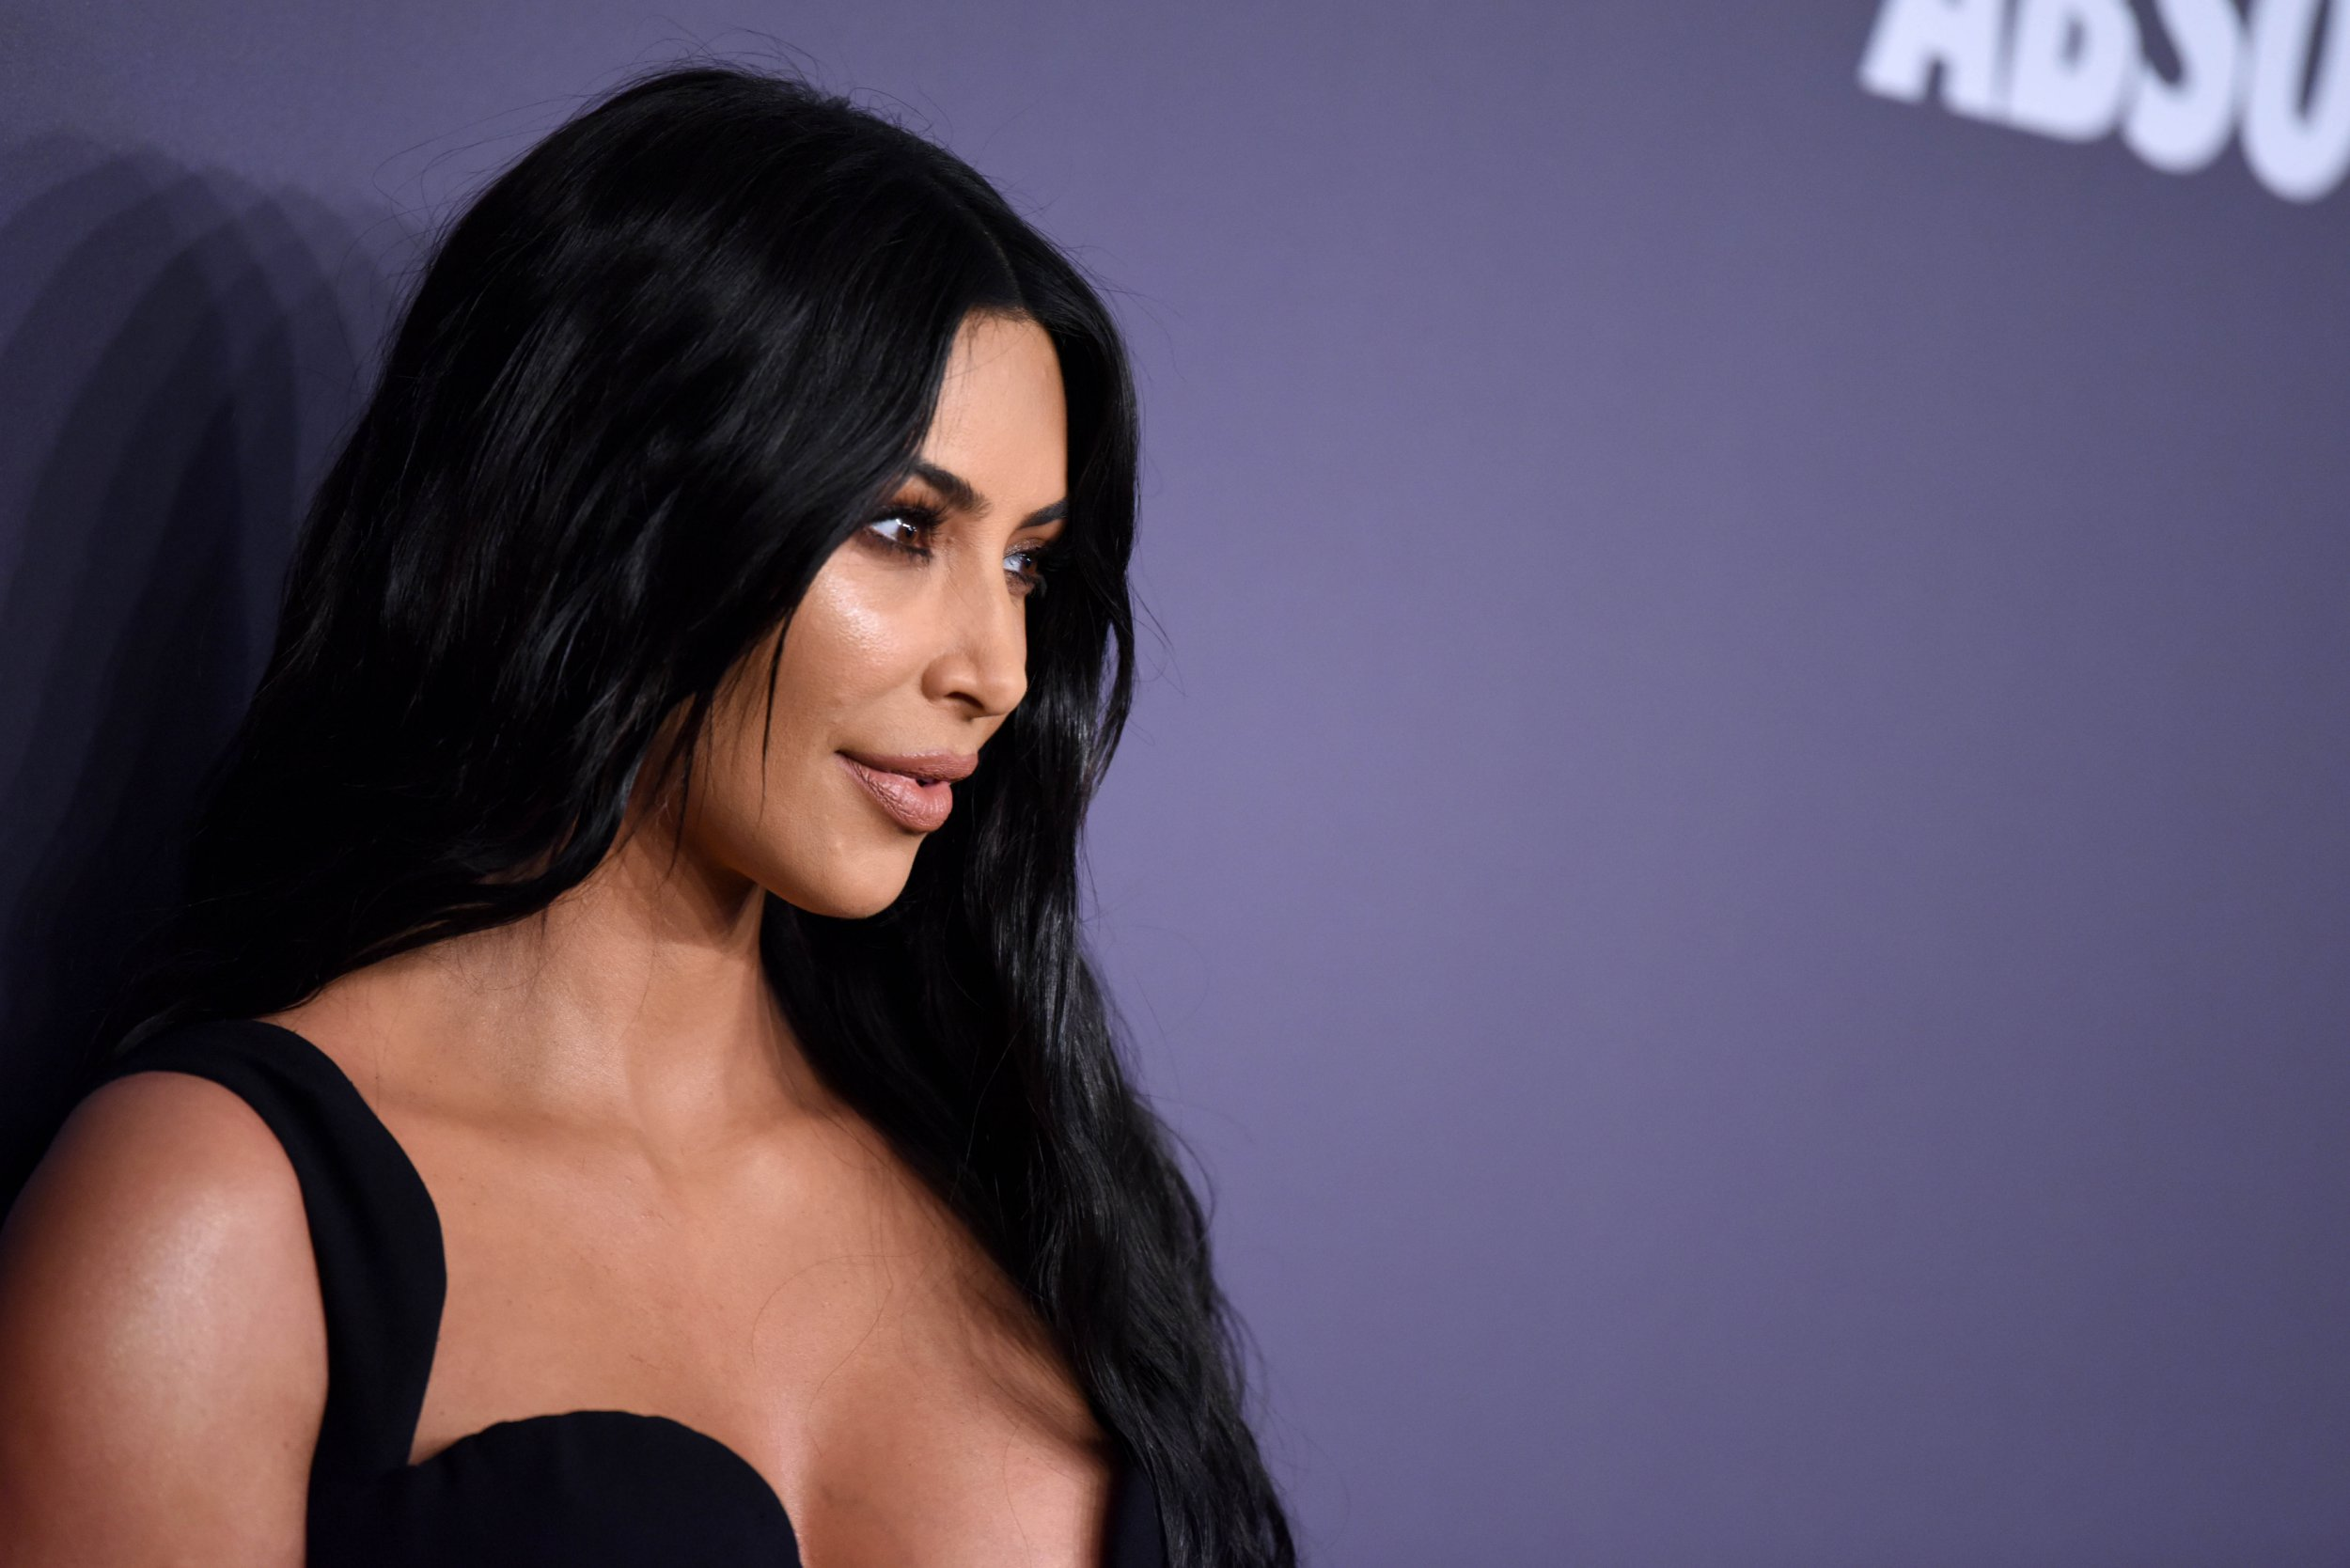 Kim Kardashian paying a man's rent for the next five years following his release from prison